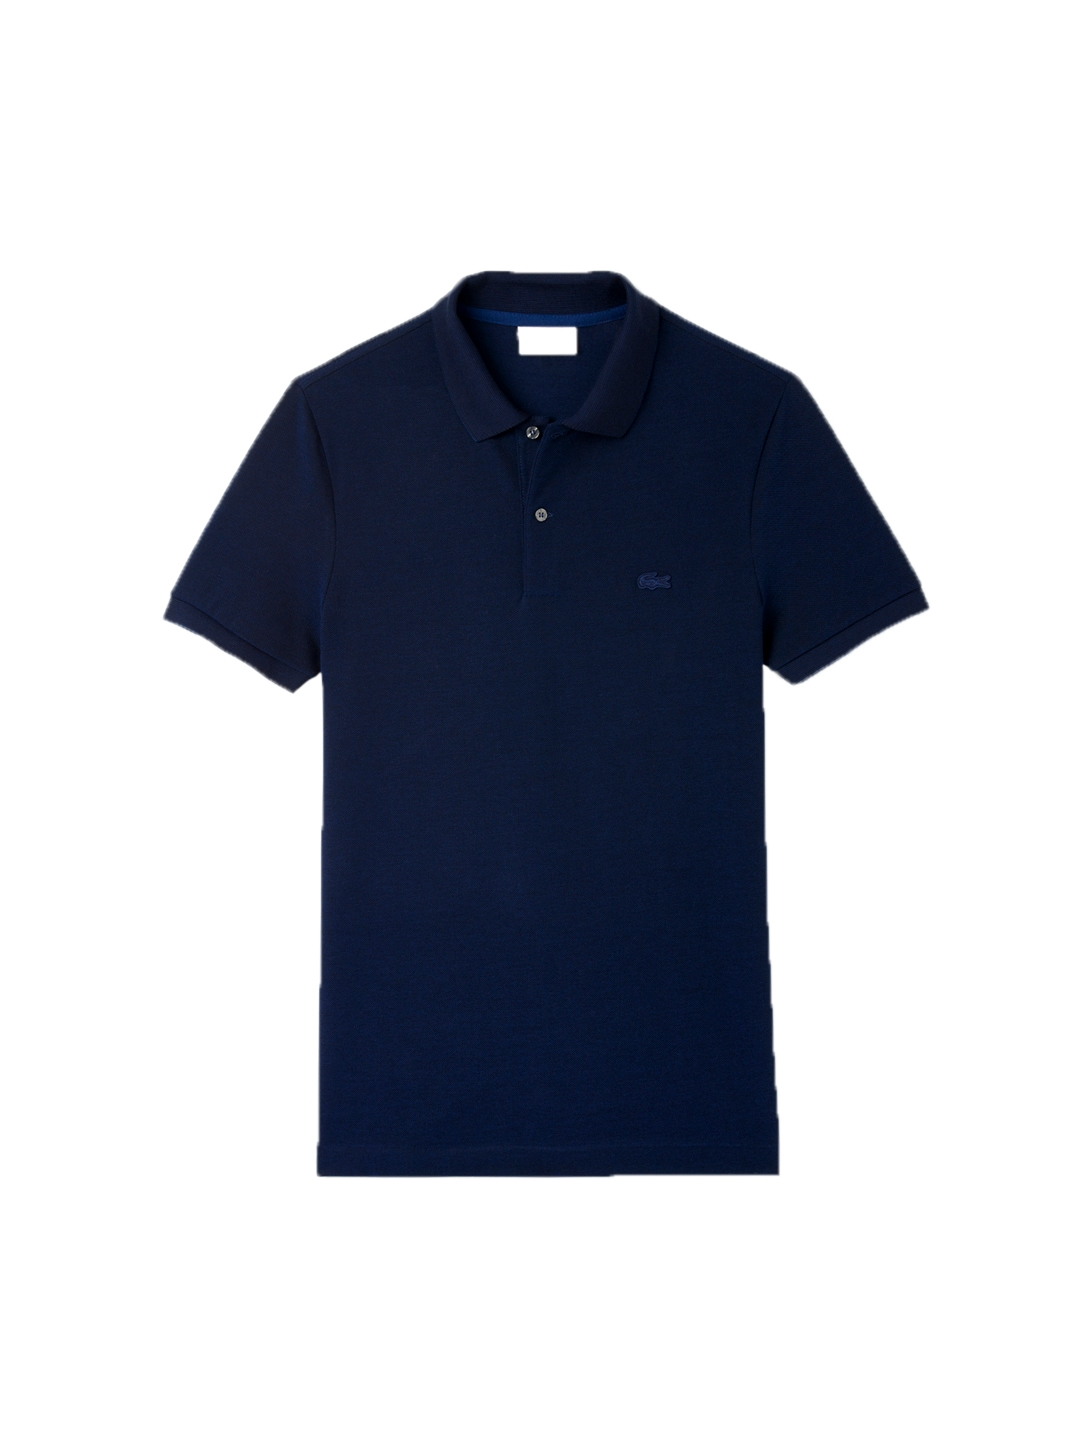 Buy Fit Polo Tshirts Blue Caviar Slim Bicolor Lacoste Men Pique 5LRjq34A